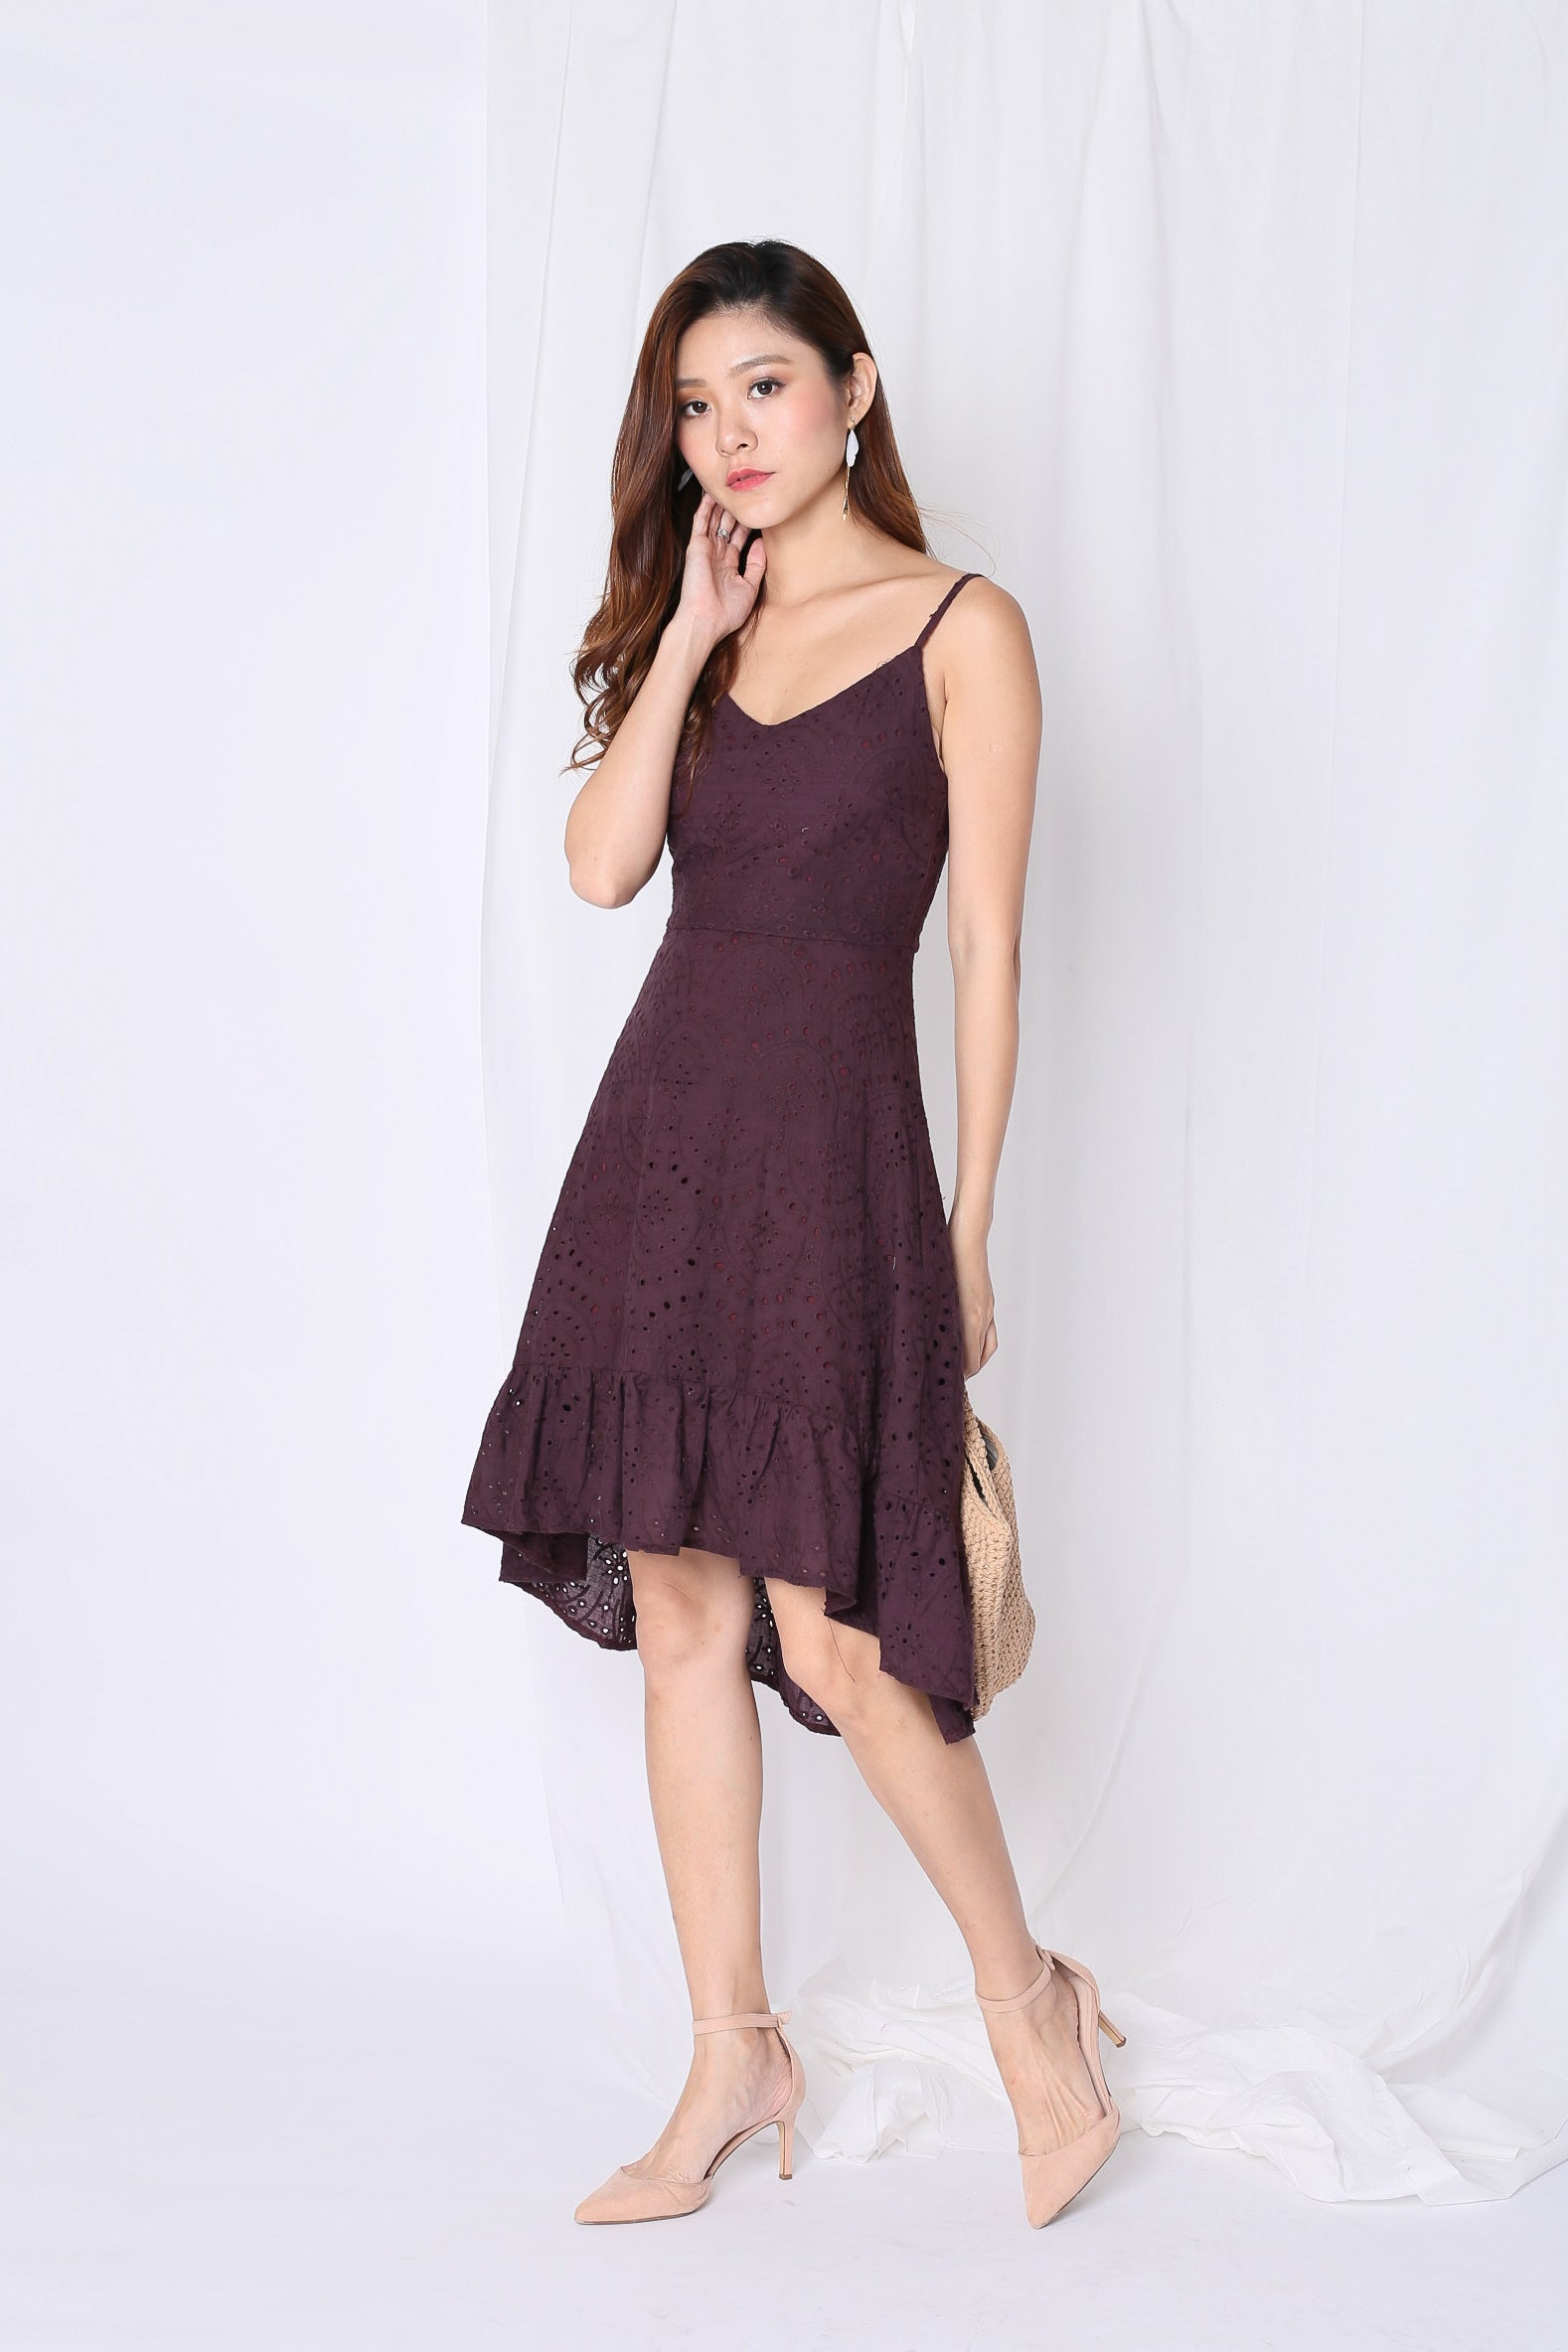 *TPZ* (PREMIUM) SHEVELLE EYELET DRESS IN PLUM